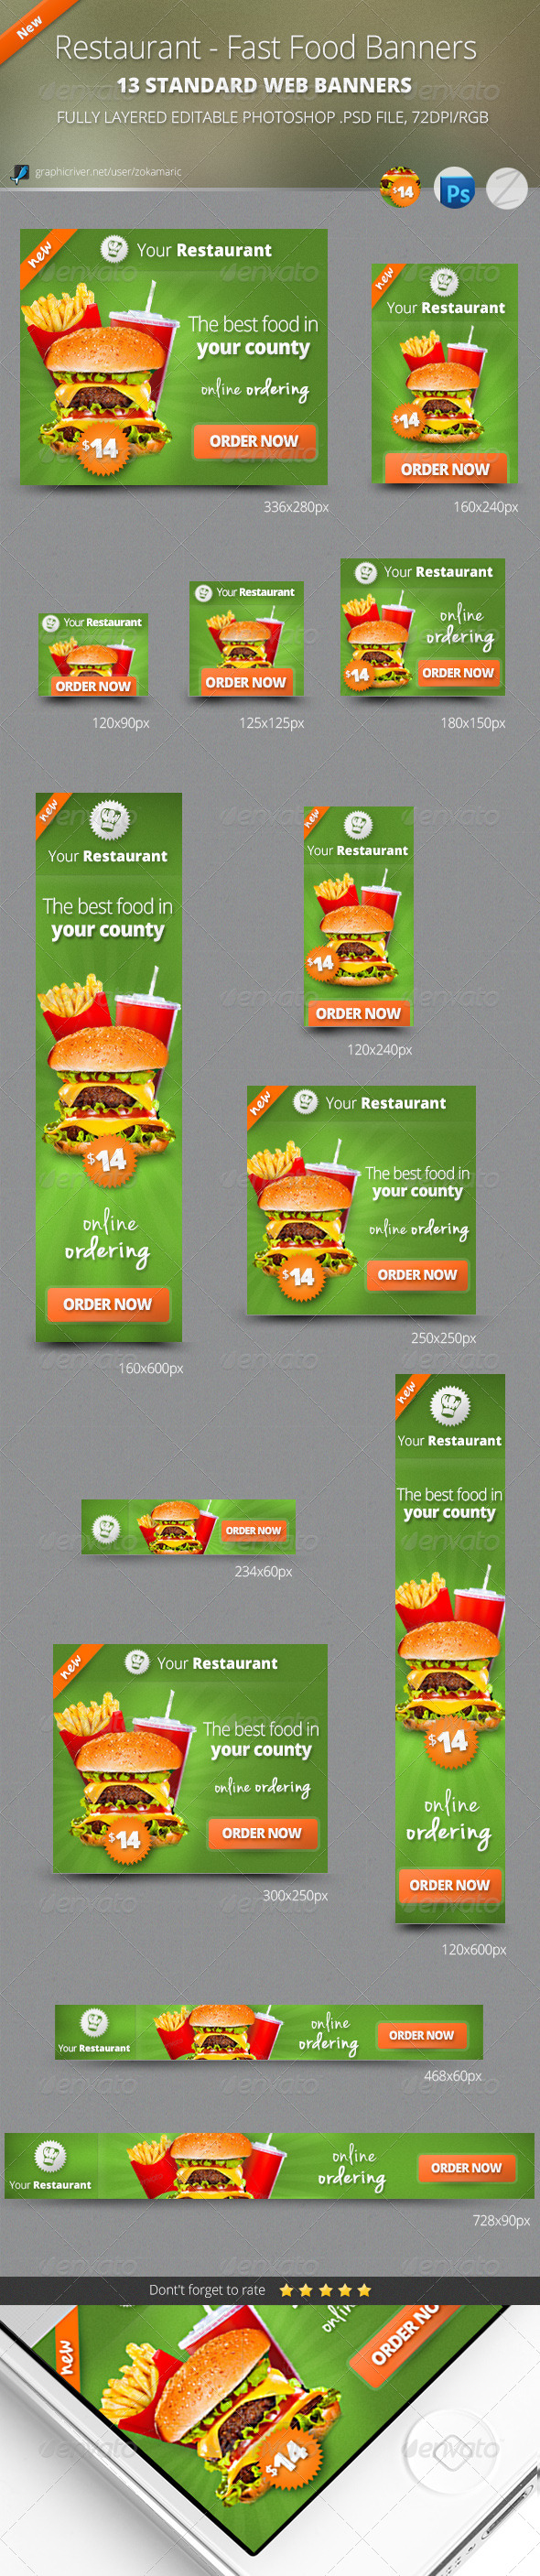 GraphicRiver Restaurant Fast Food Banners 5022898